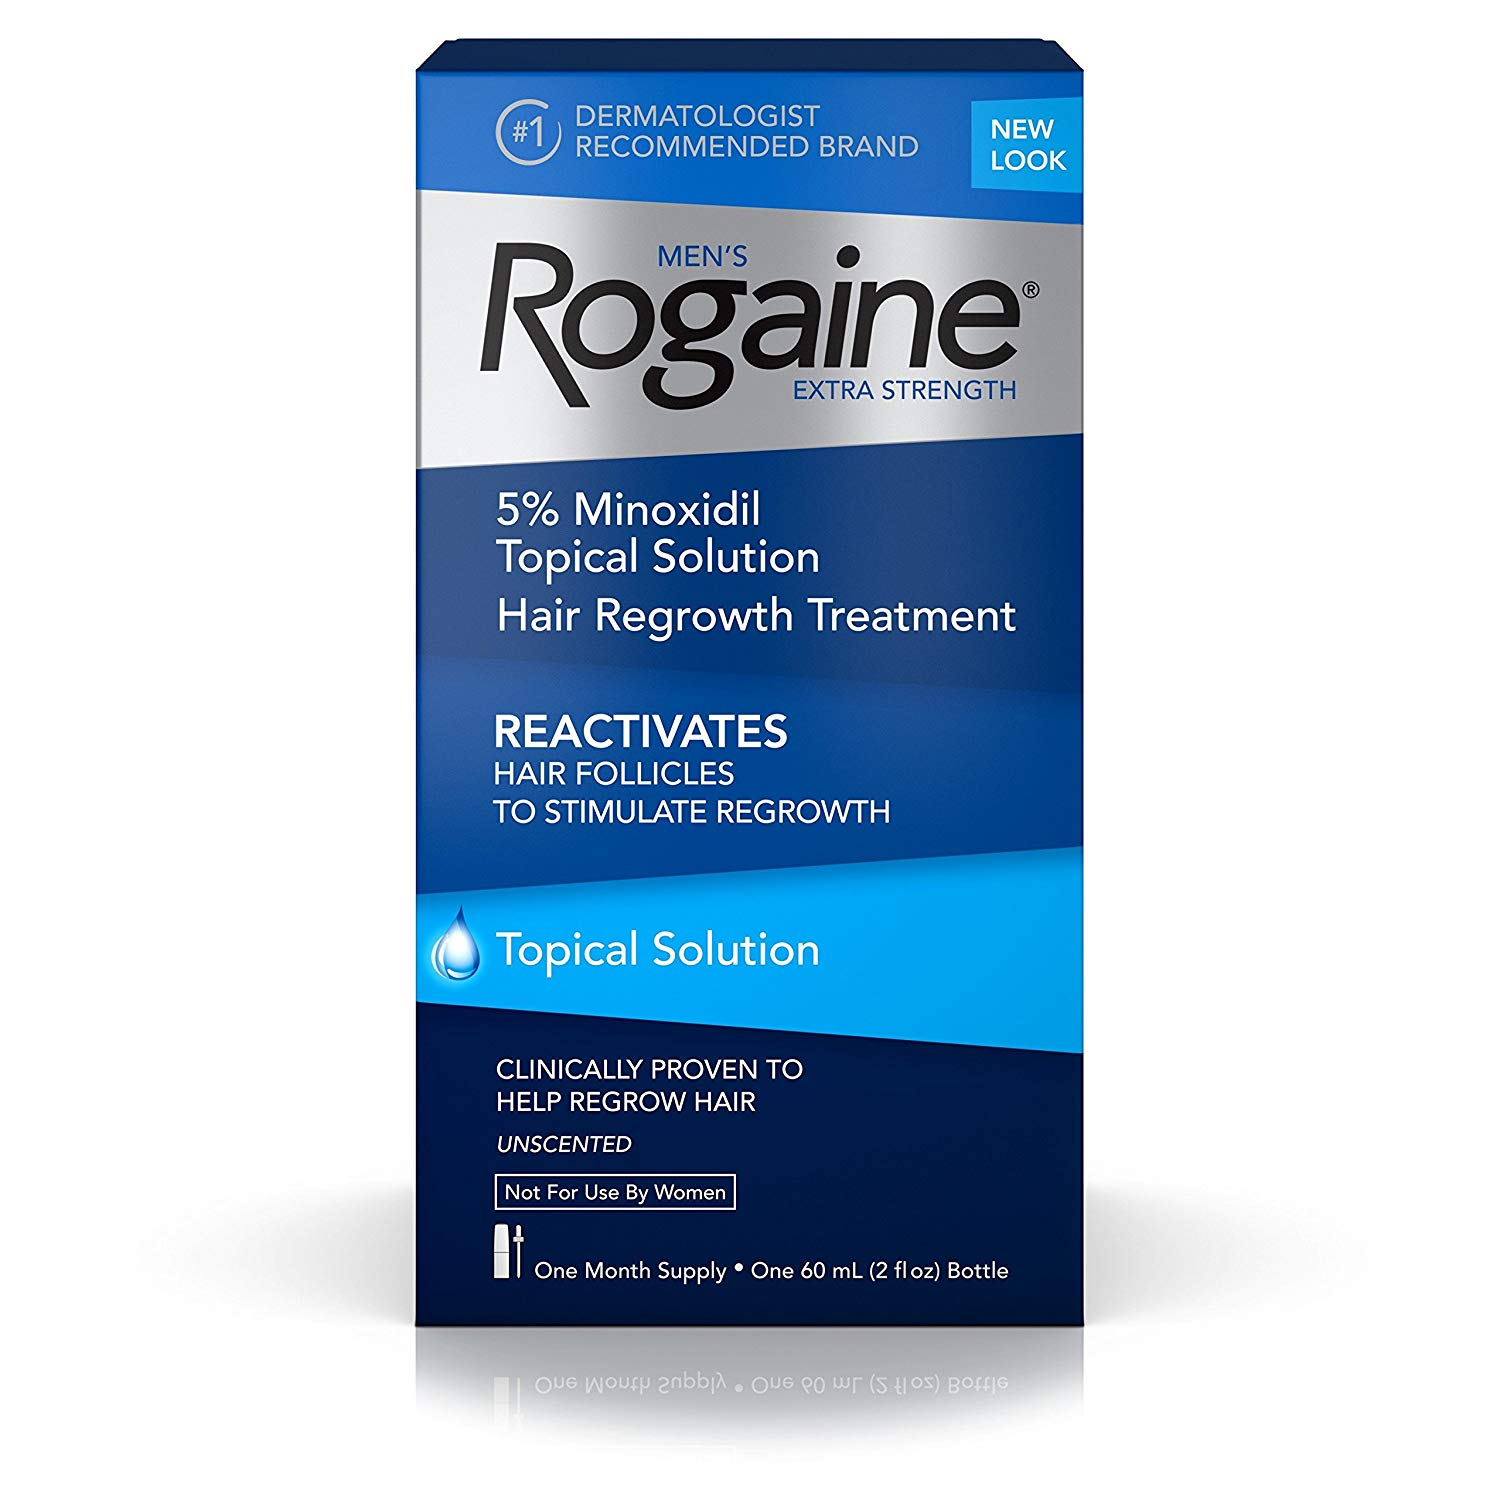 Men's  Extra Strength 5% Minoxidil Topical Solution for Hair Loss and Hair Regrowth, Topical Treatment for Thinning Hair, 1-Month Supply Rogaine - 1 Month Supply